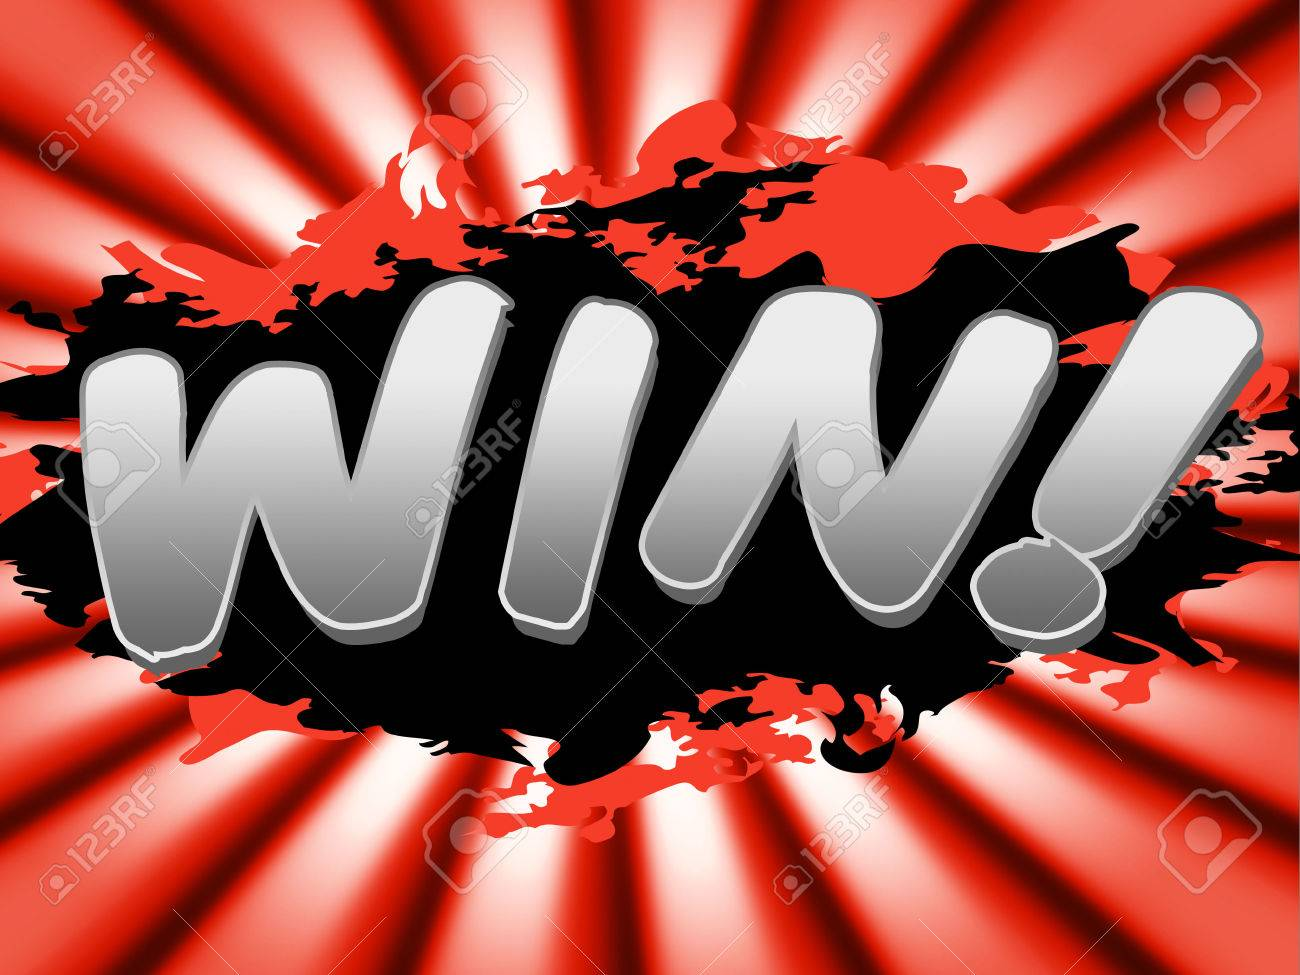 win sign representing successful placard and prevail stock photo